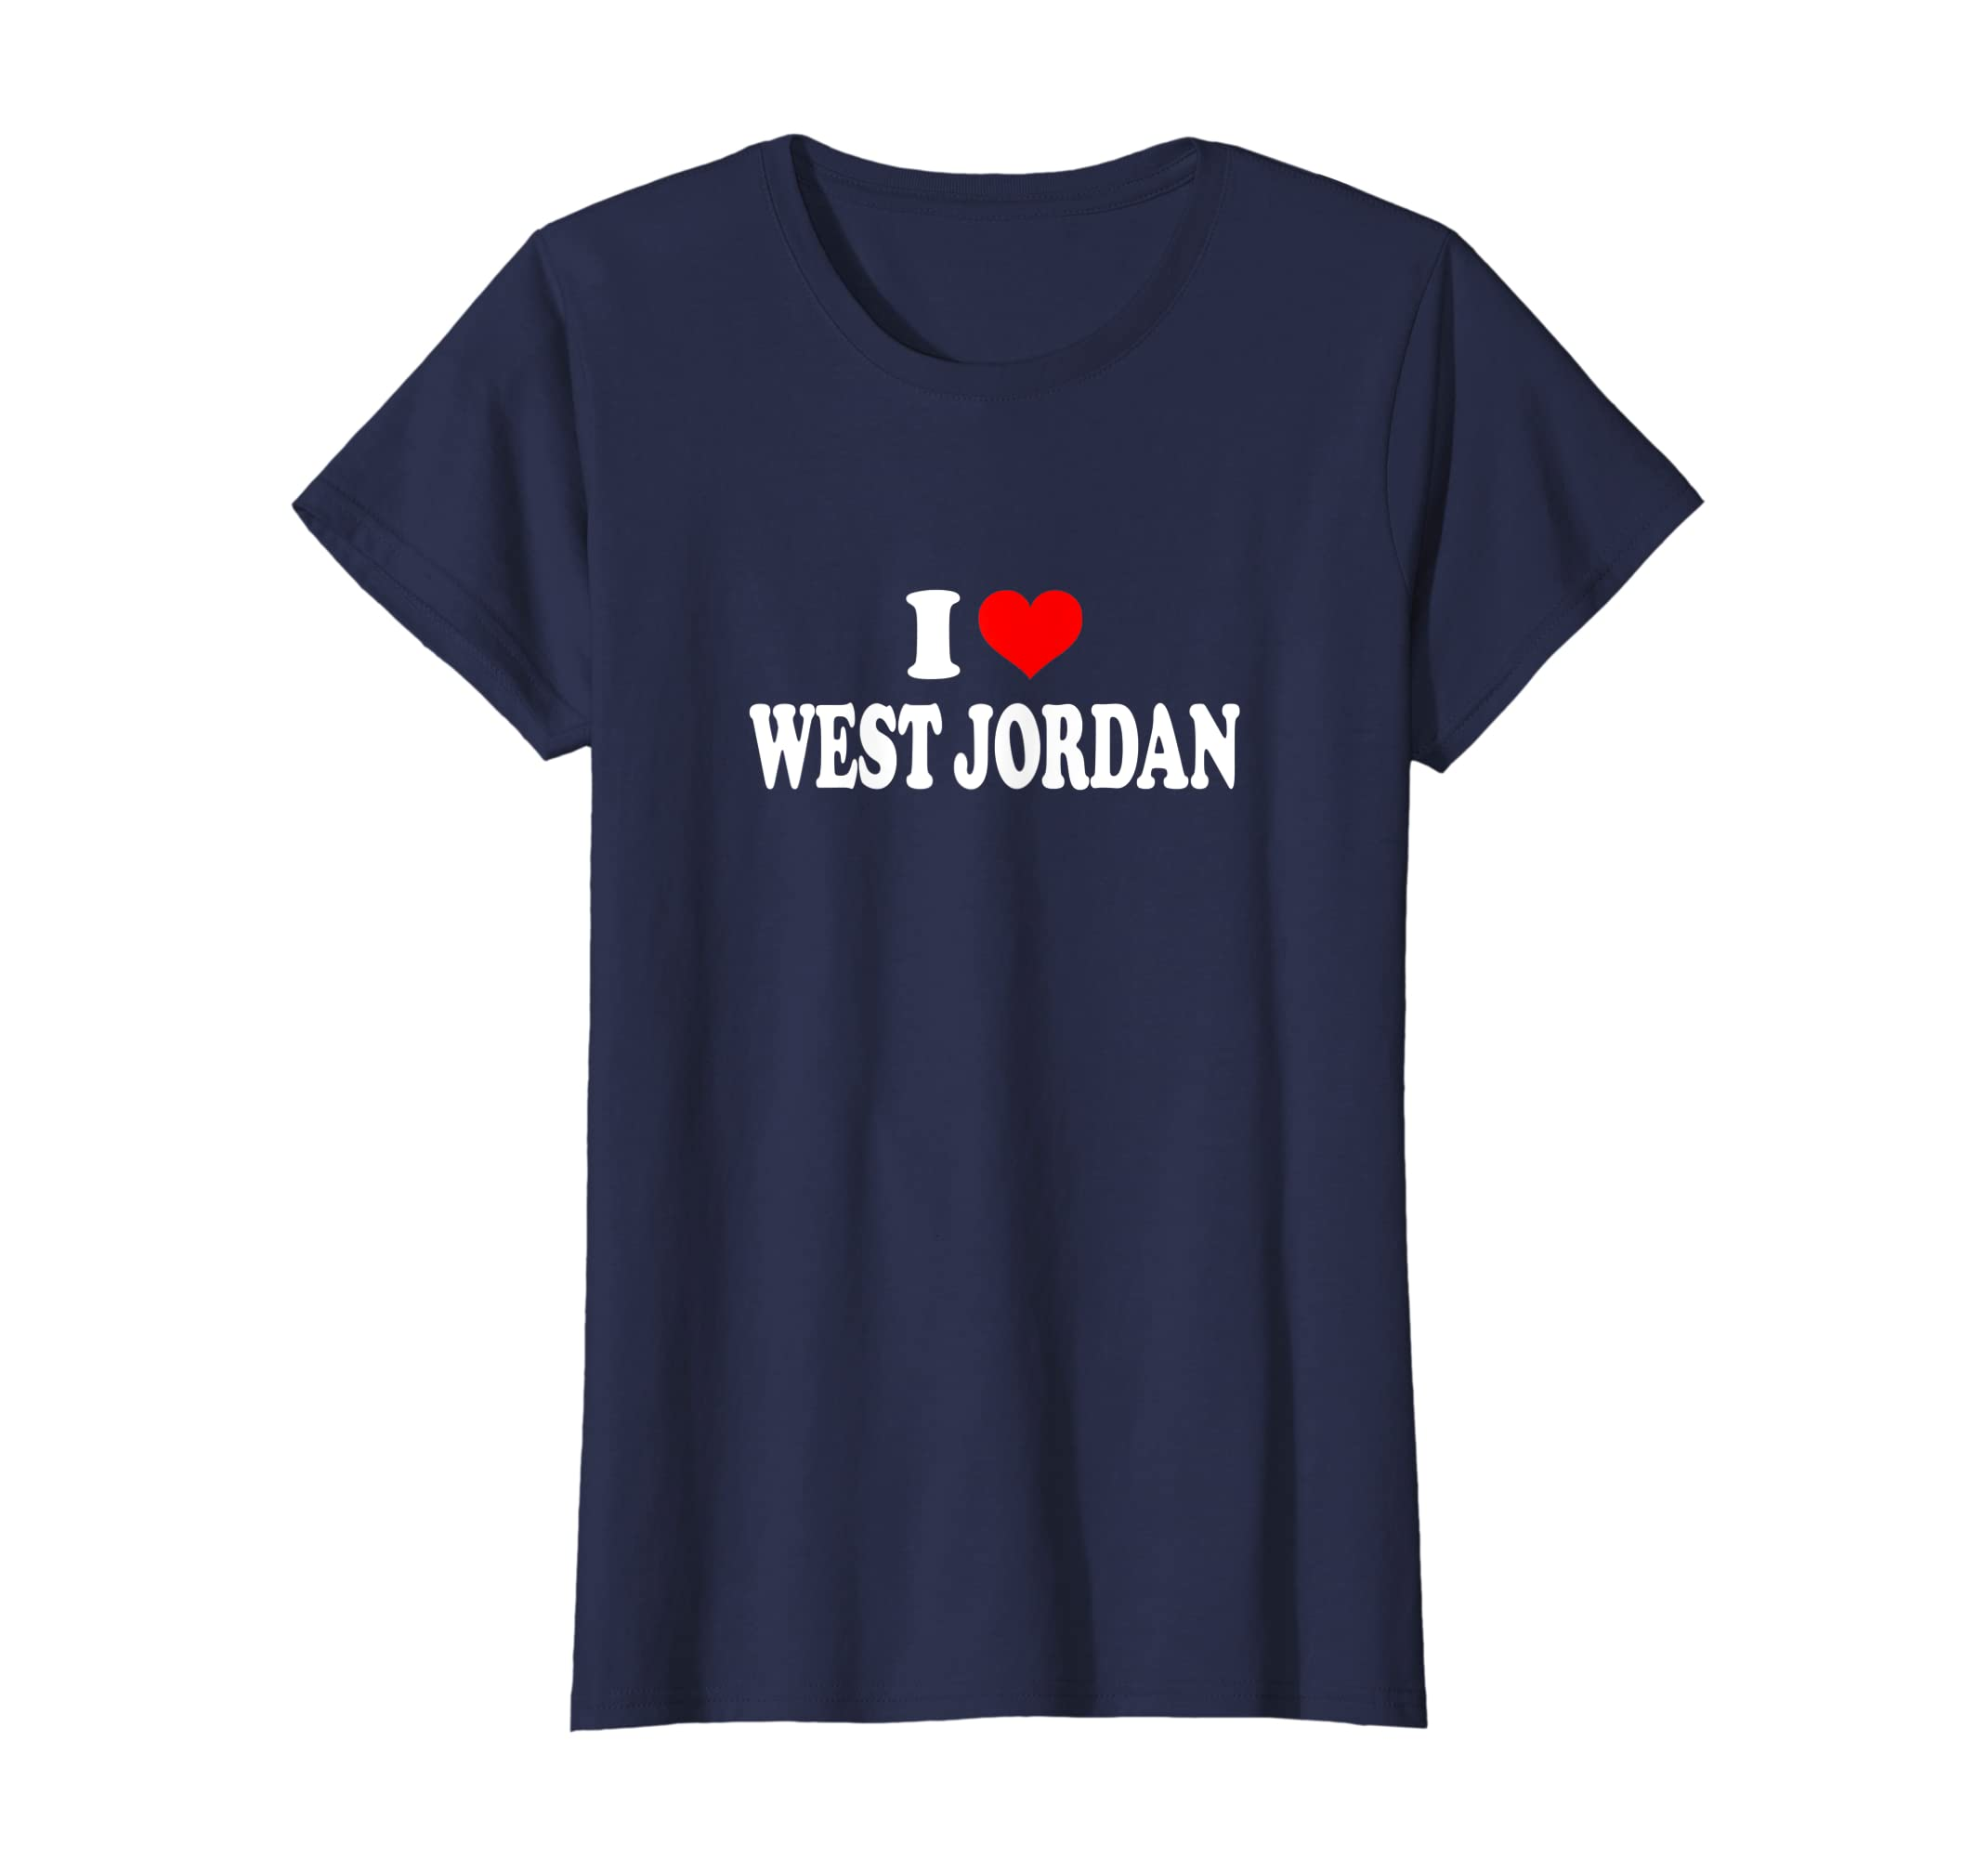 4eacb76b8025d8 Amazon.com  I Love West Jordan T-Shirt  Clothing